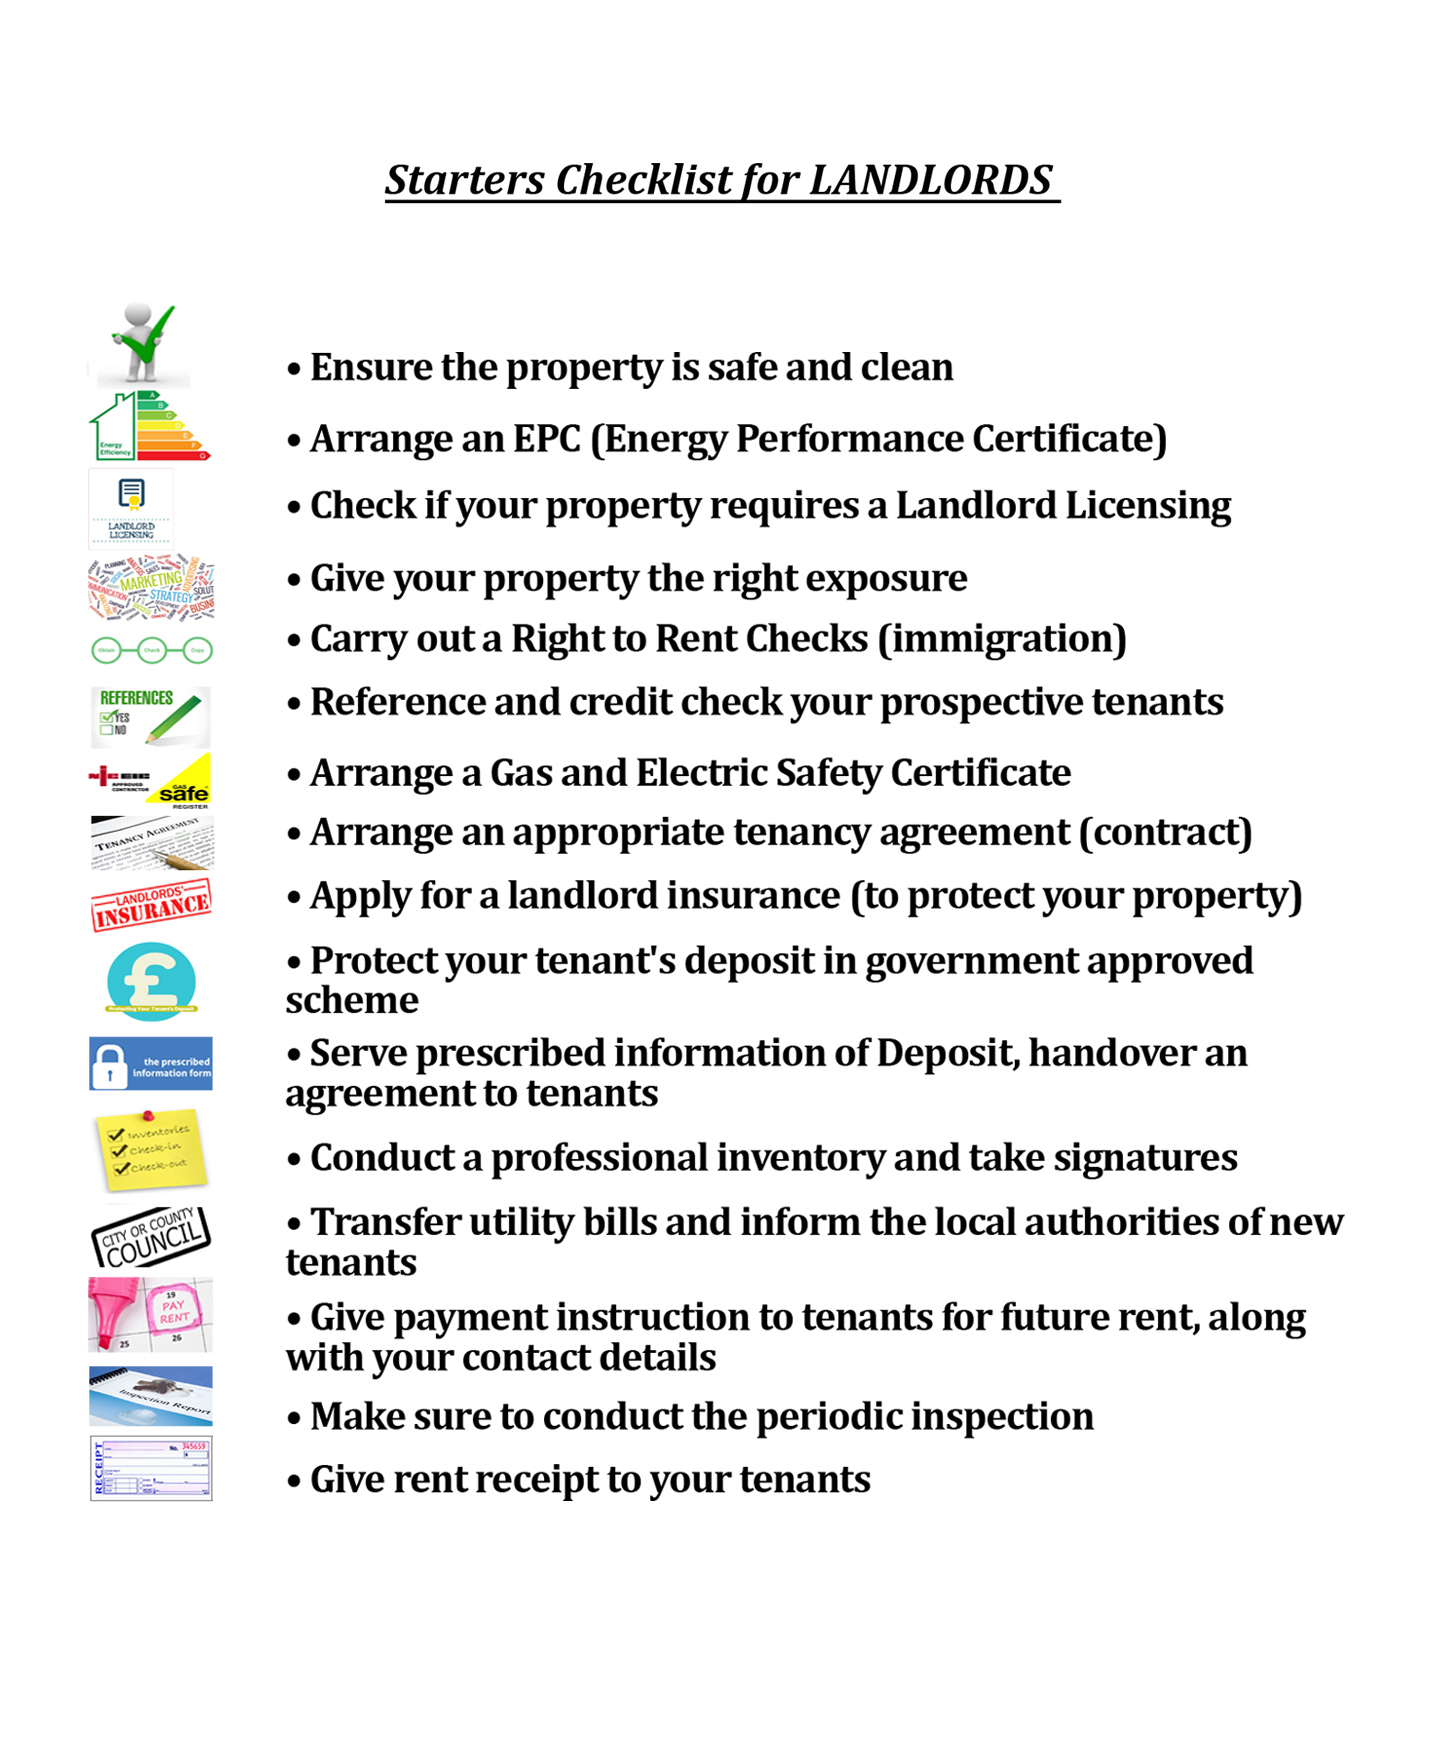 STARTERS CHECKLIST FOR LANDLORDS!!!